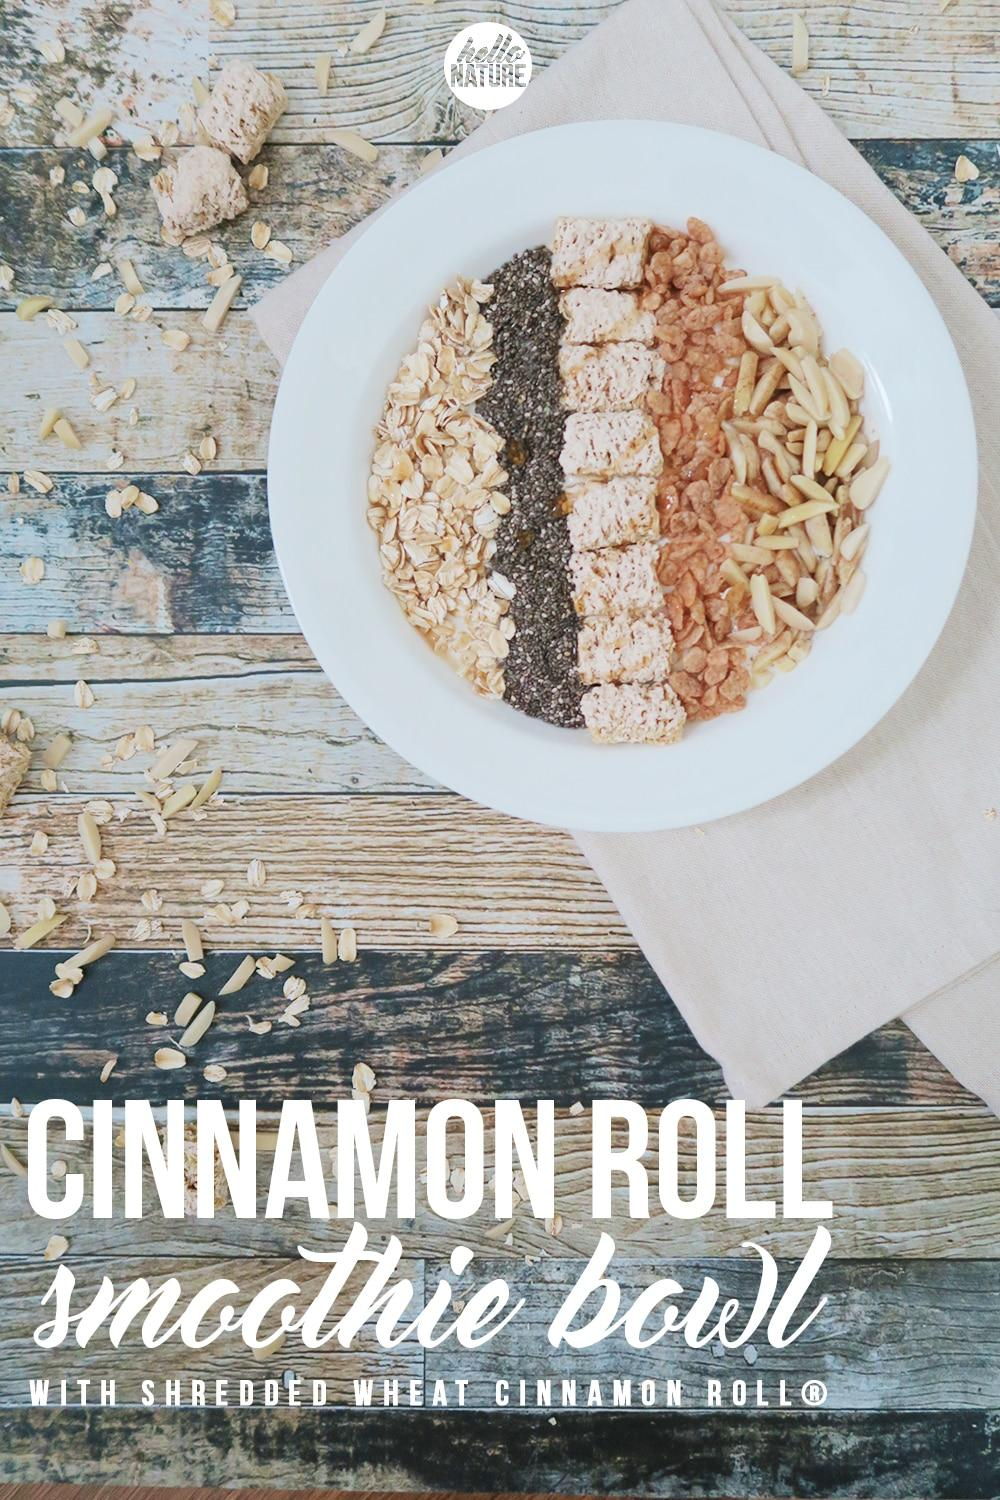 I have been obsessed with oatmeal lately. Oatmeal is so versatile, filling and delicious. I love the idea of this Cinnamon Roll Oatmeal Smoothie Bowl and can't wait to add it to my morning ritual! Find the recipe on this week's linky party...